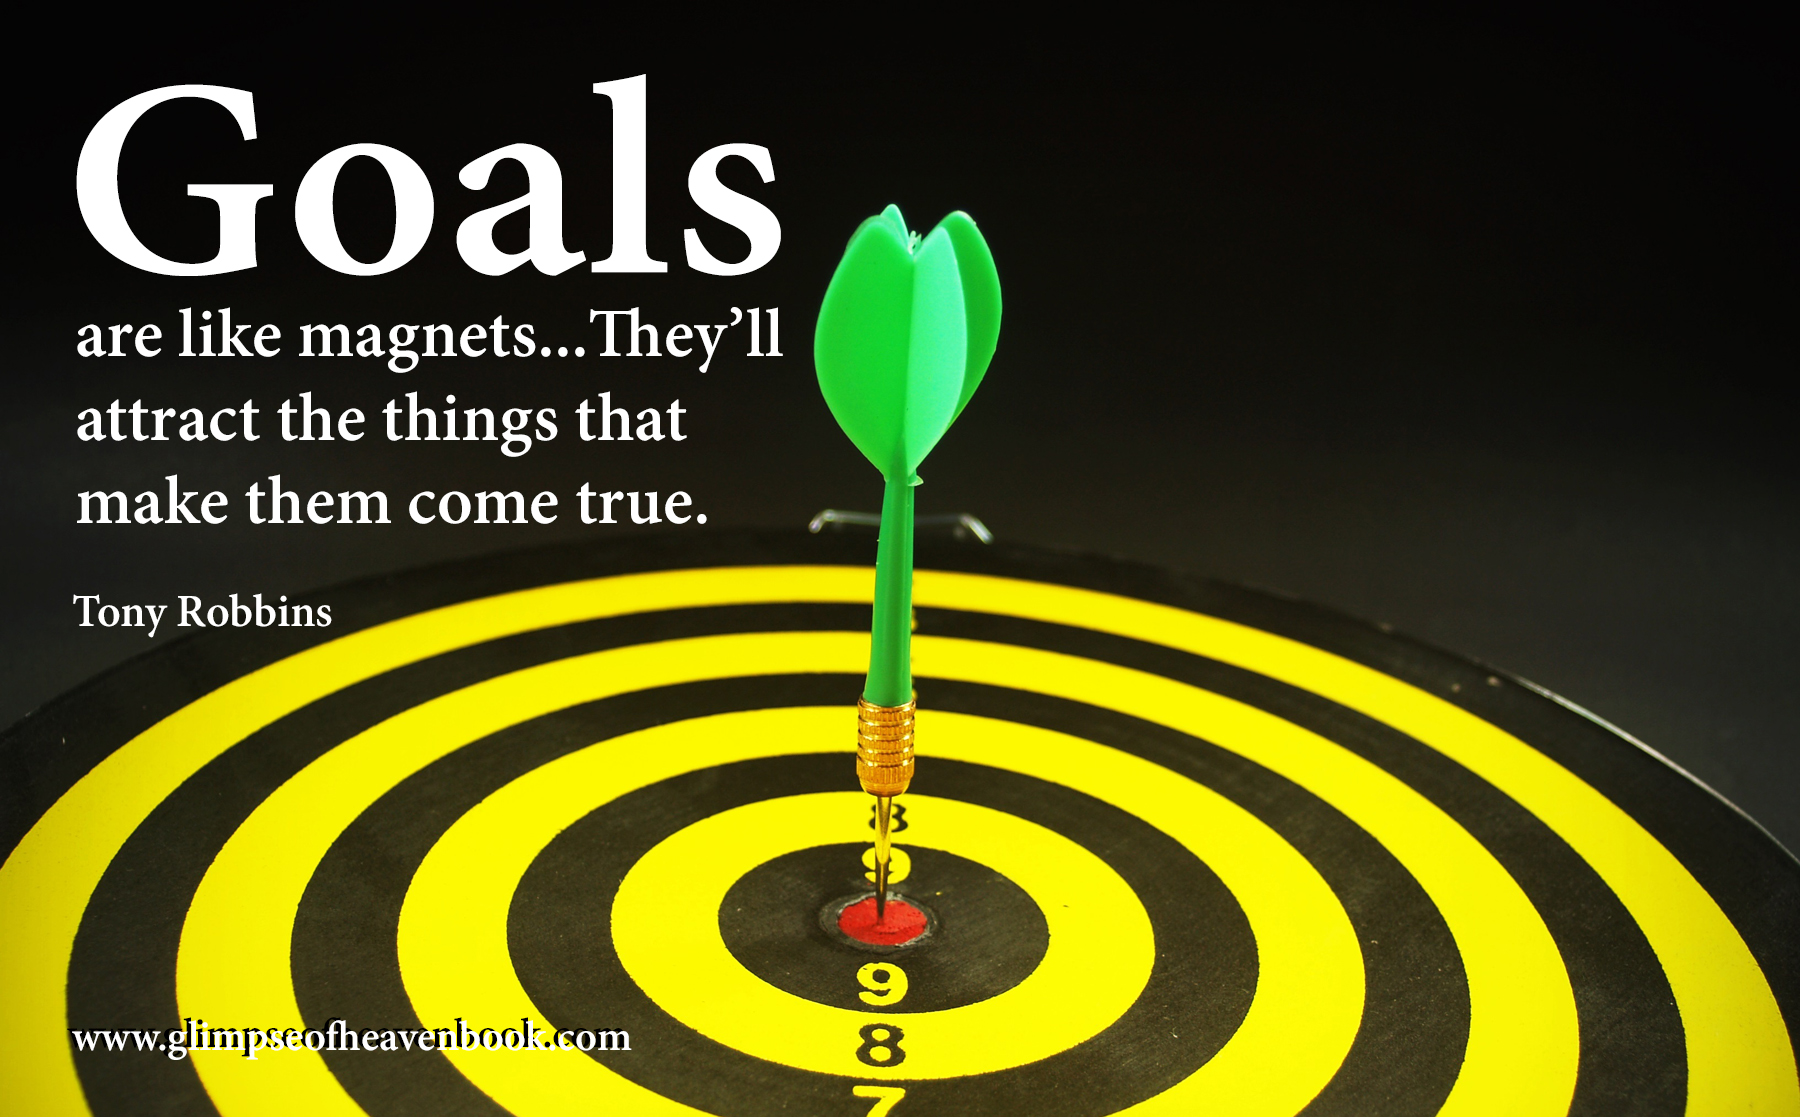 Goals are like magnets...They'll attract the things that make them come true. Tony Robbins